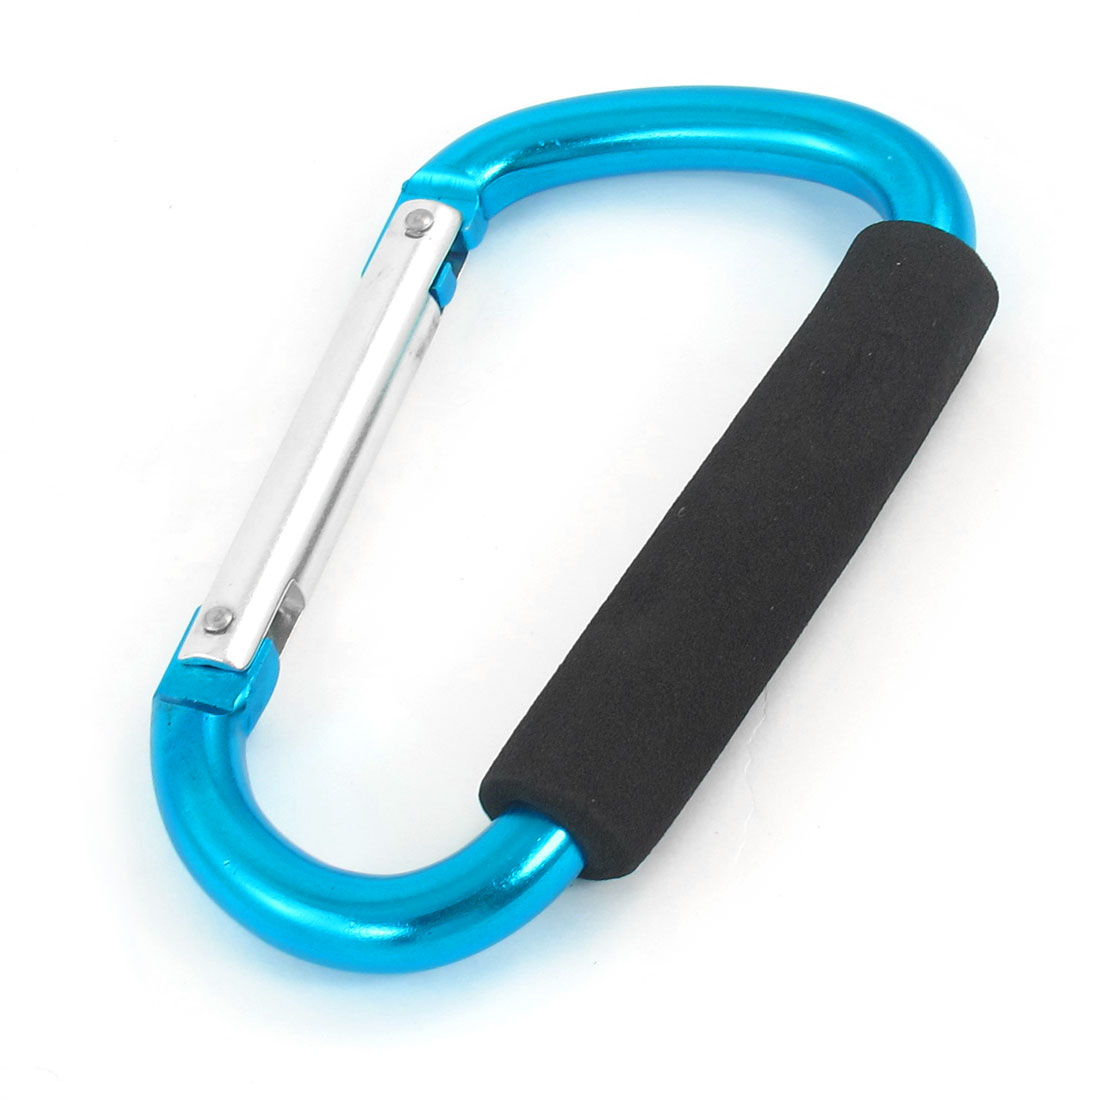 Travel Hiking D Shaped Aluminum Alloy Carabiner Hook Dodger Blue